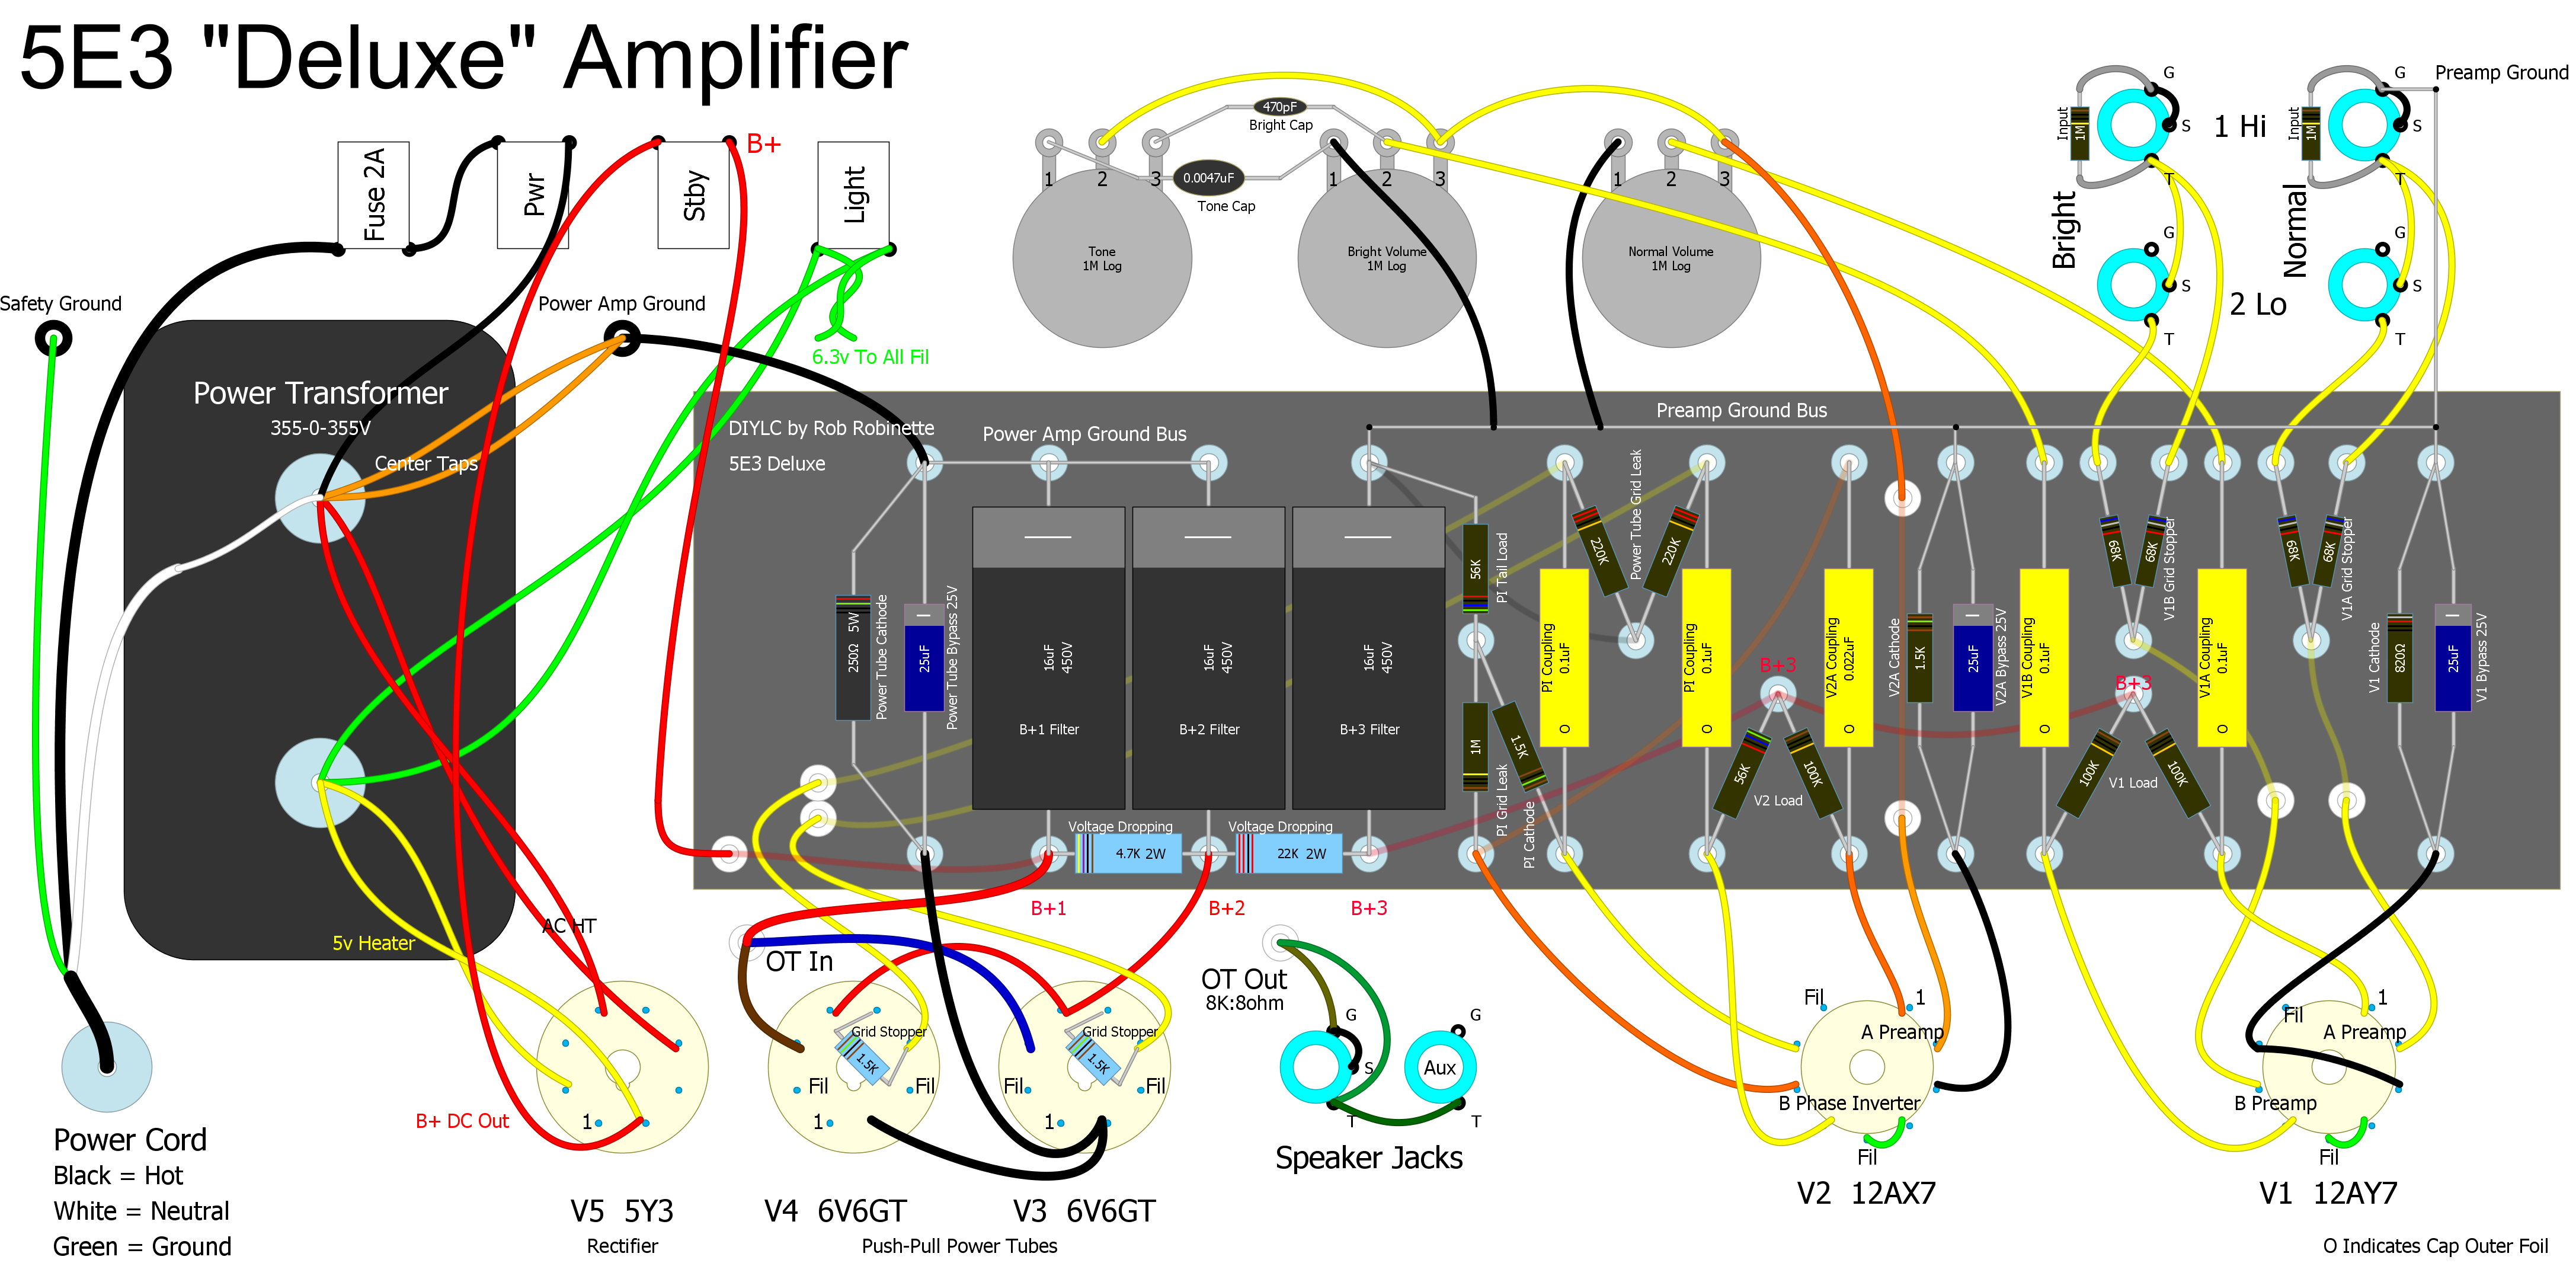 How Amps Work Circuits Amp Guitar Music Related Schematics Also See Audio Diy Electronics Projects Electronic Amplifier Speakers